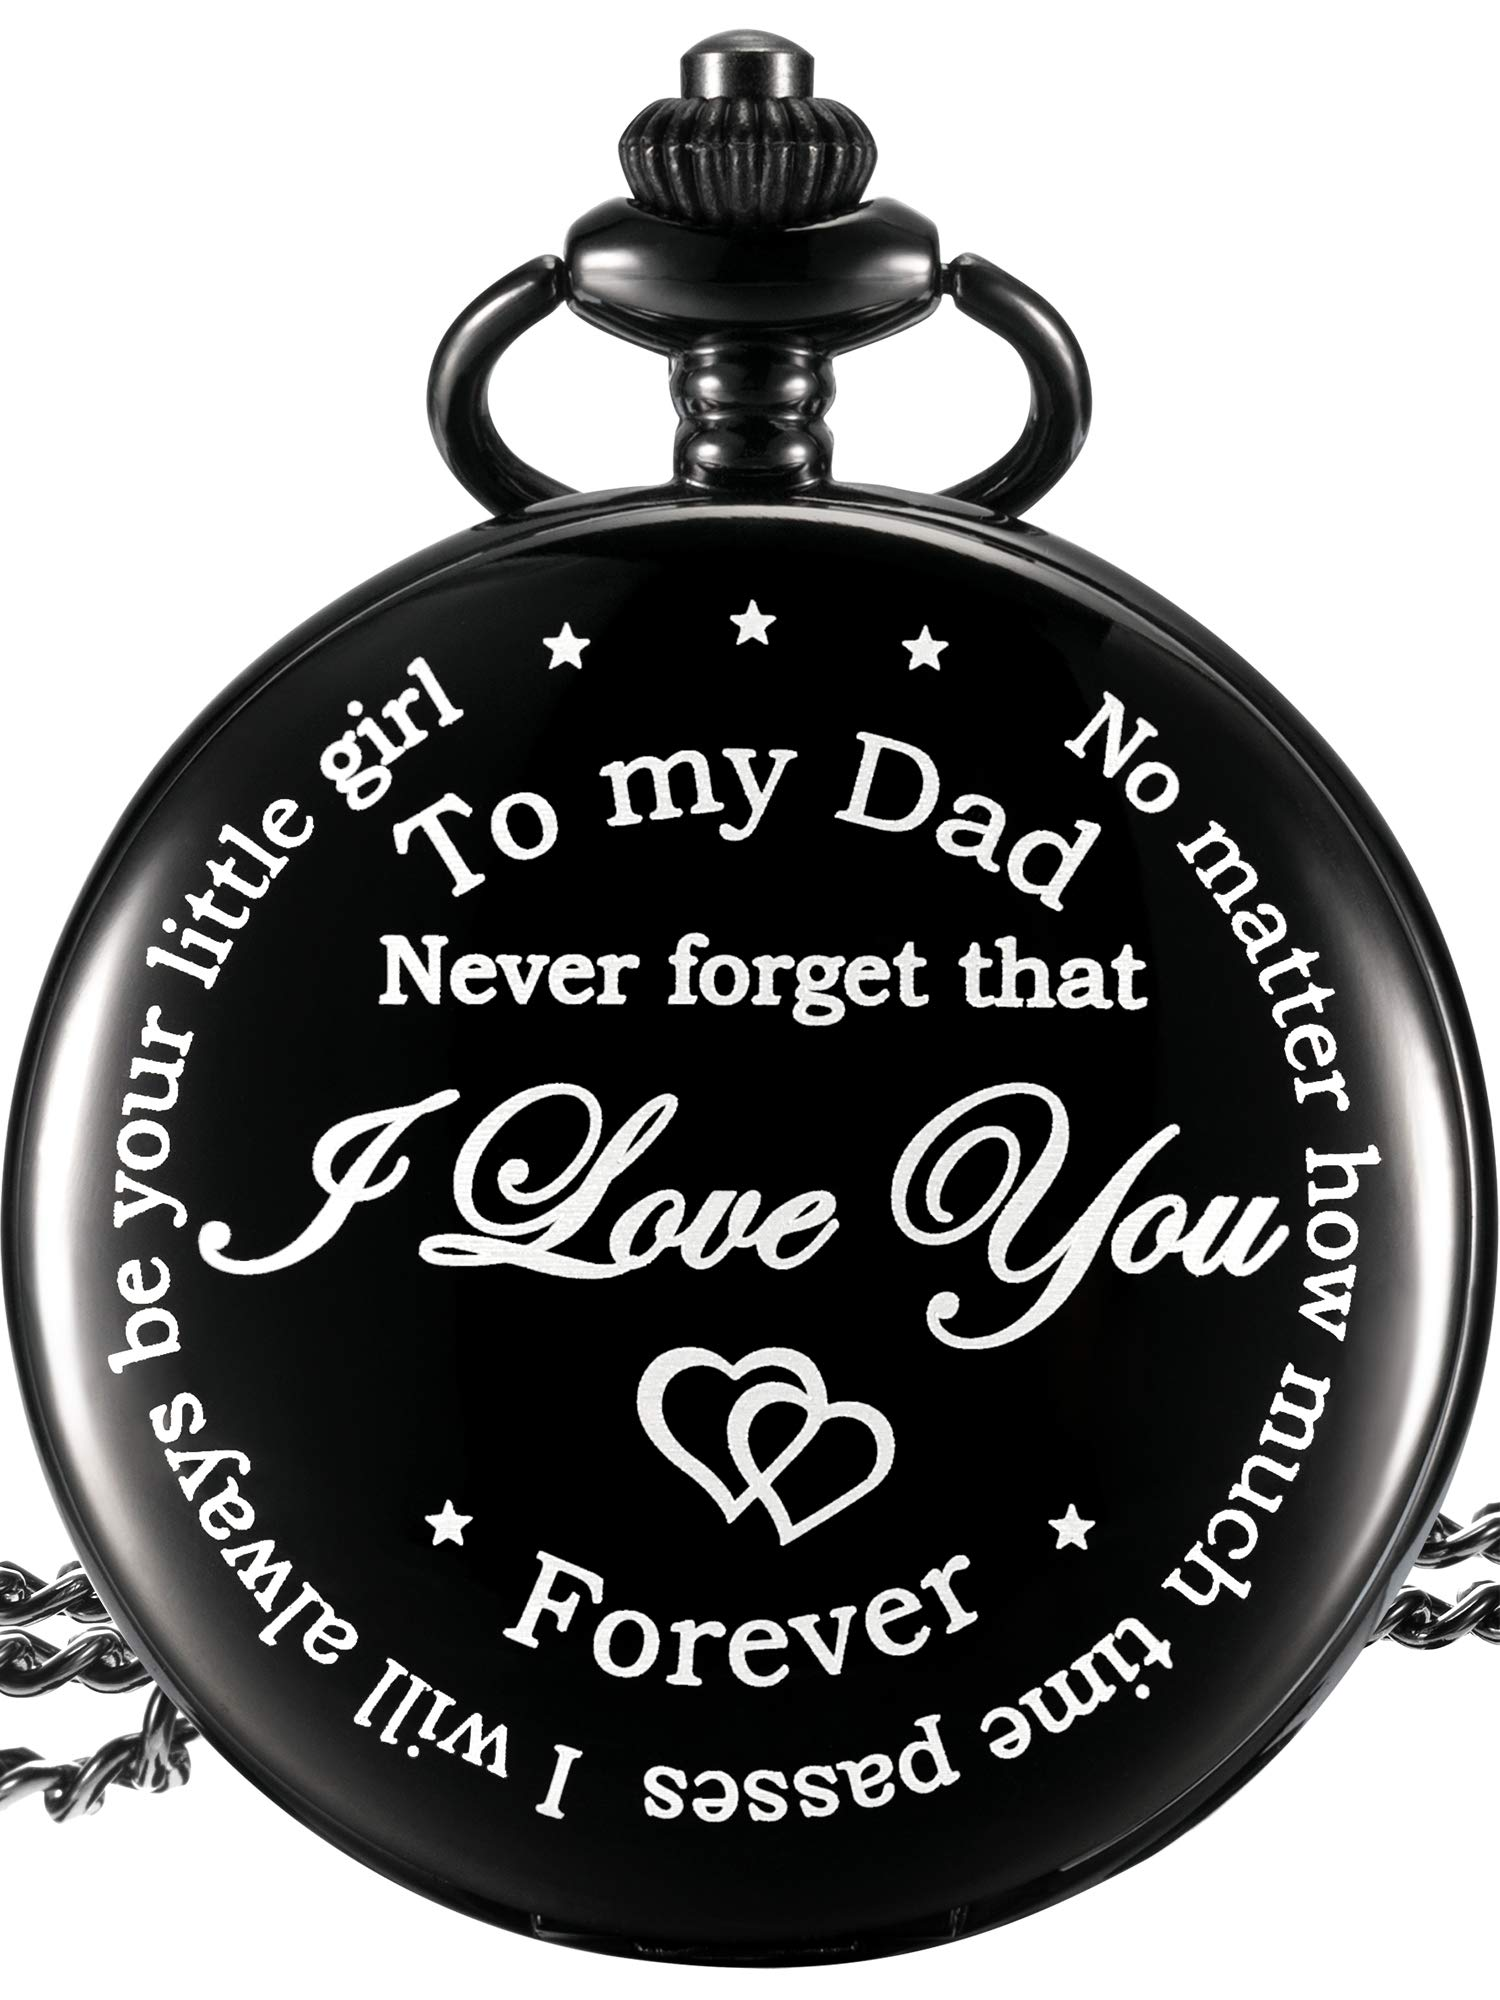 Dad Gift from Daughter to Father Engraved Pocket Watch - No Matter How Much Time Passes, I Will Always Be Your Little Girl (Black) by Hicarer